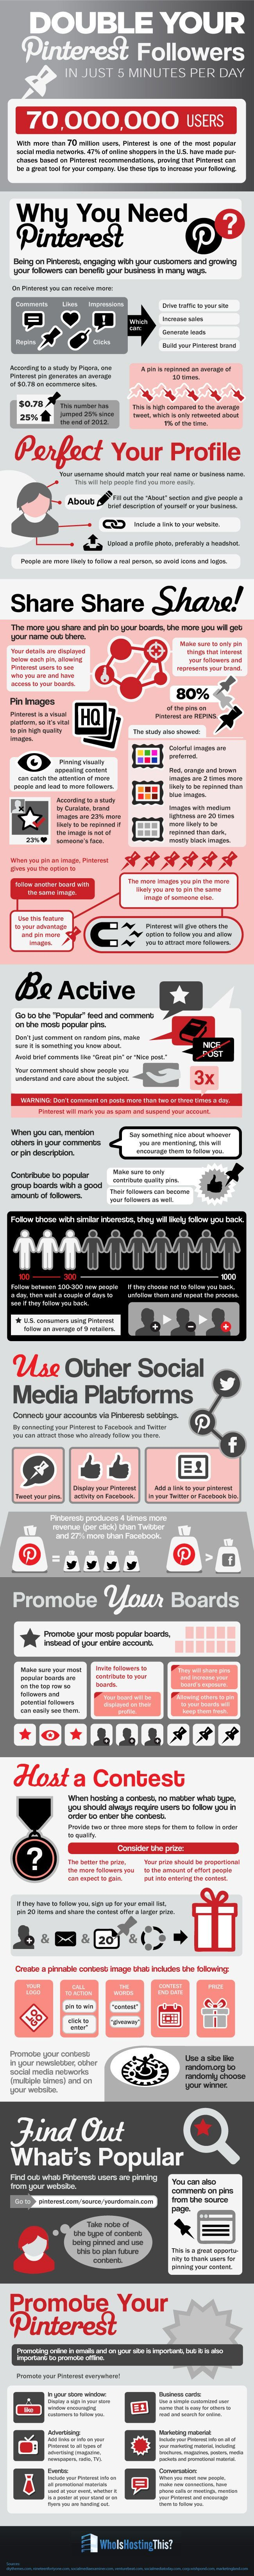 Great tips in this infographic for increasing your Pinterest followers in a few minutes per day   social media   marketing   Pinterest http://www.socialfresh.com